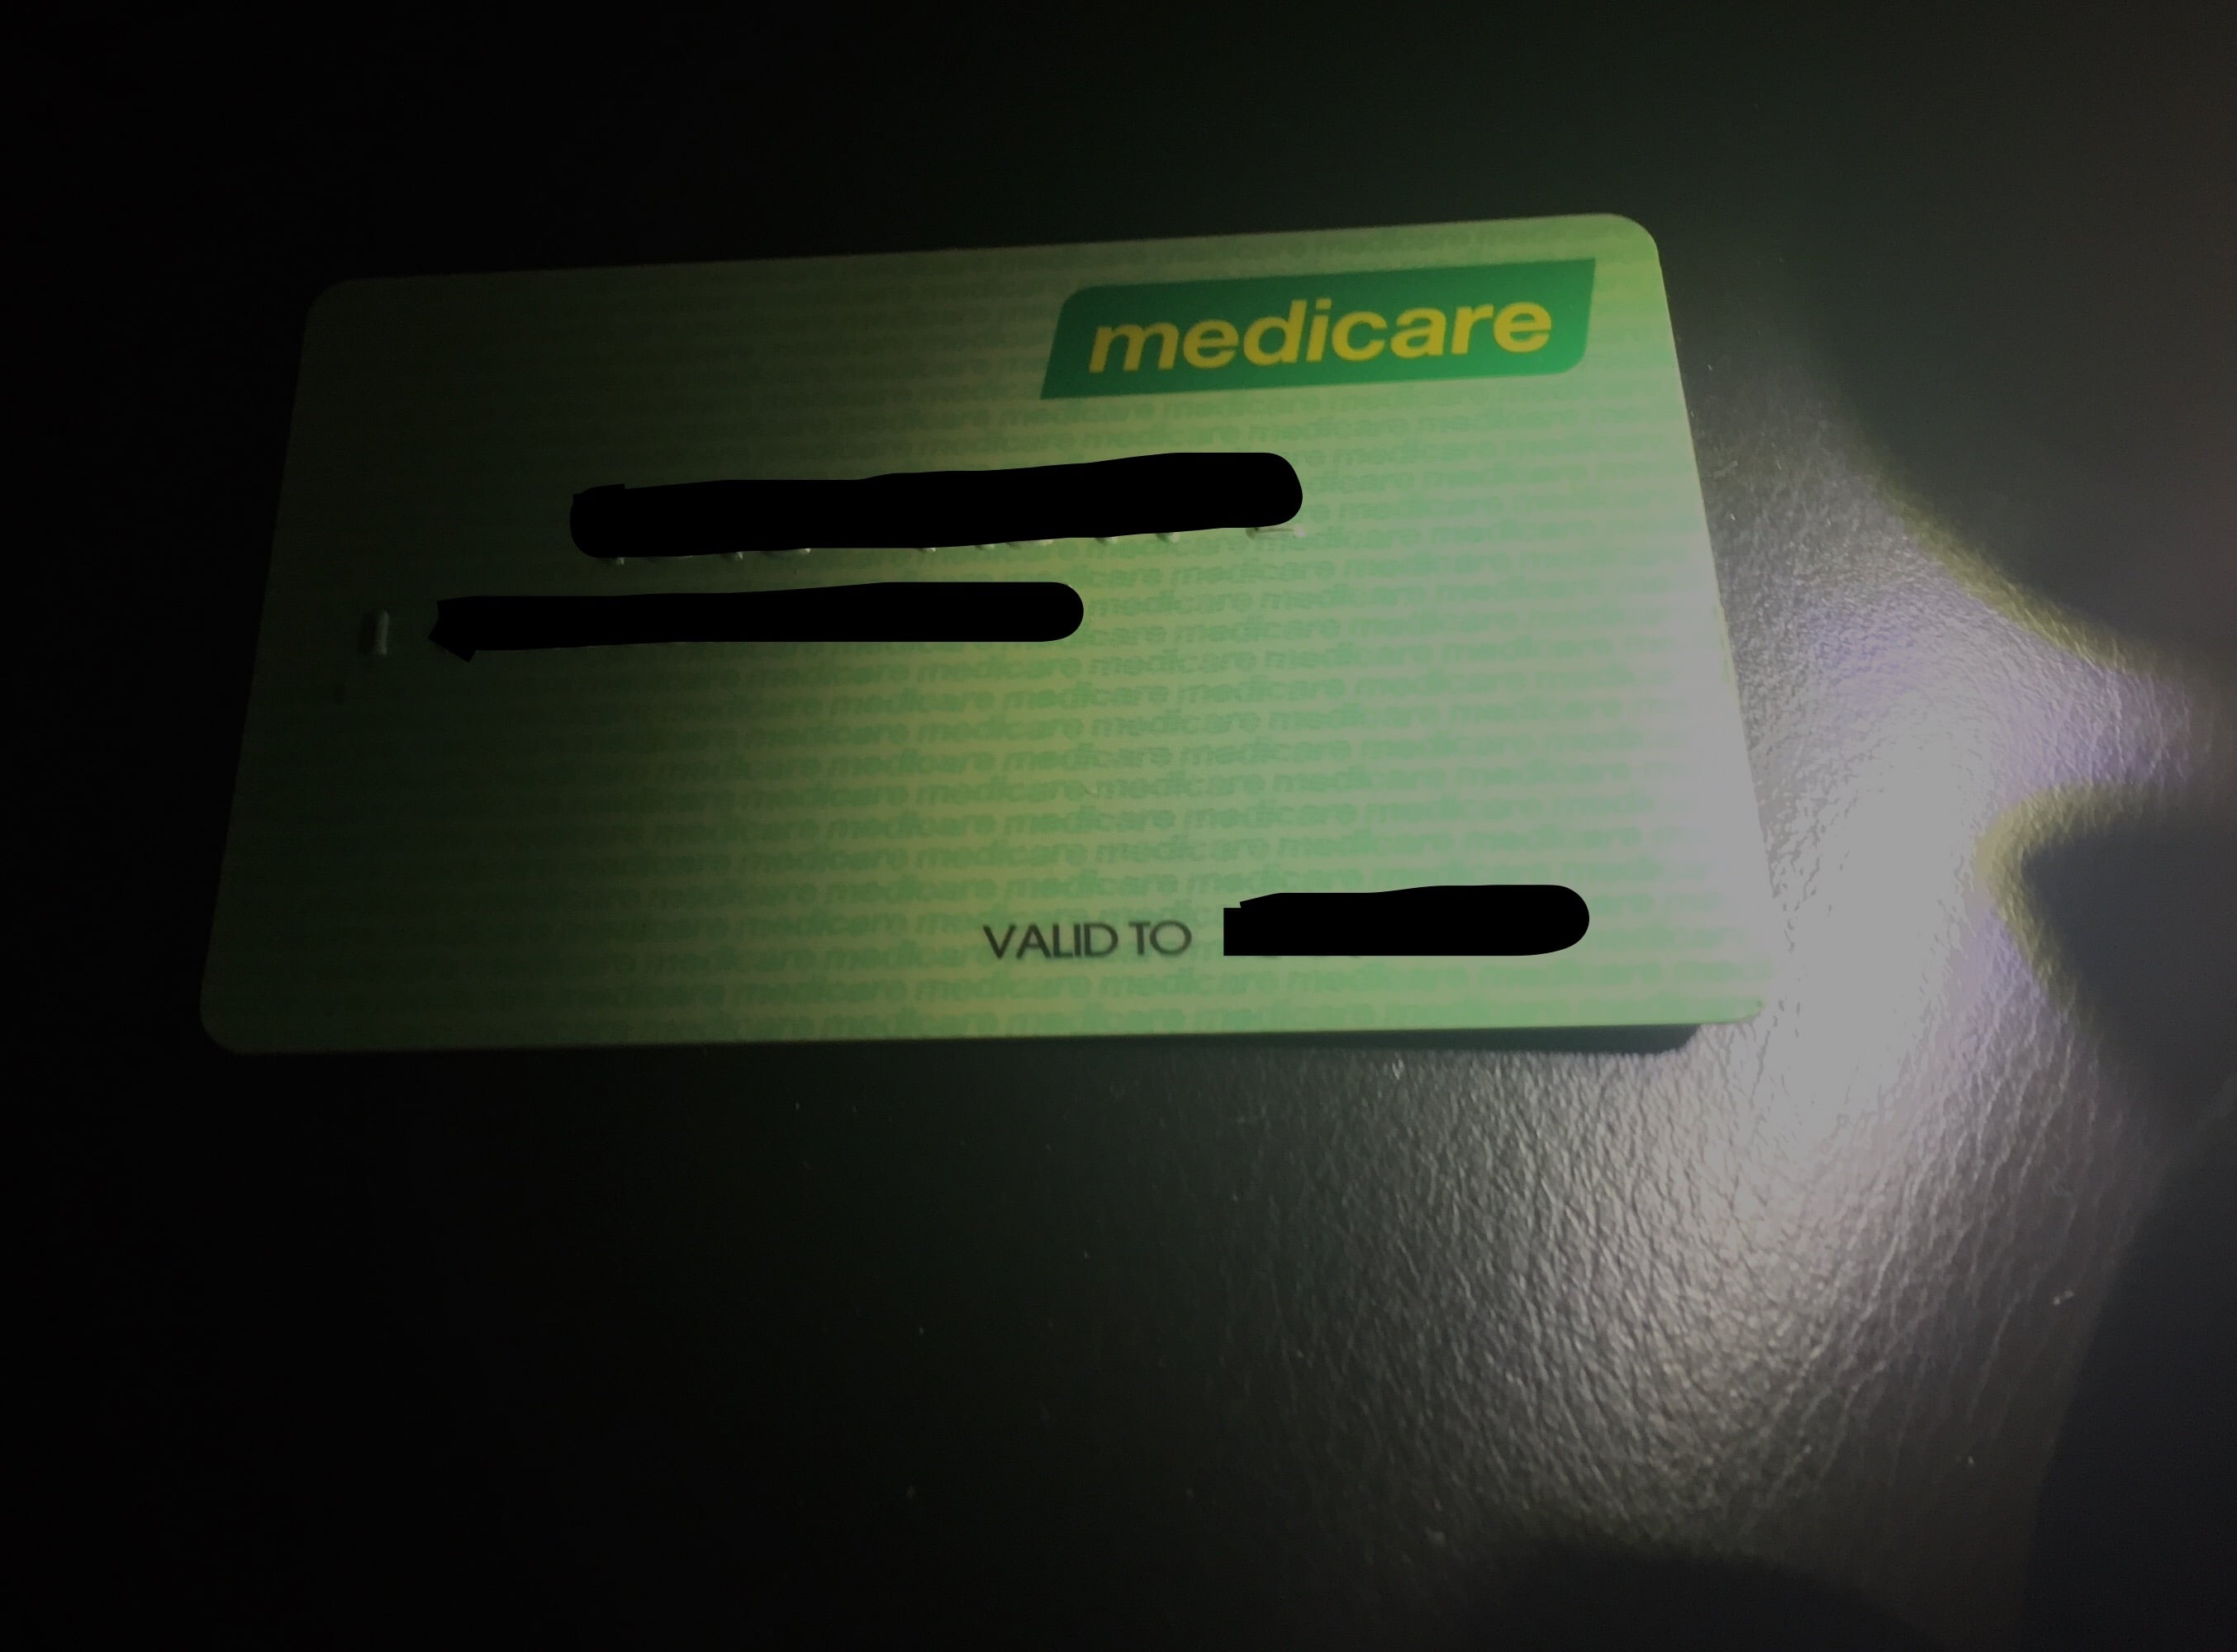 Government urged to act quickly on Medicare data breaches